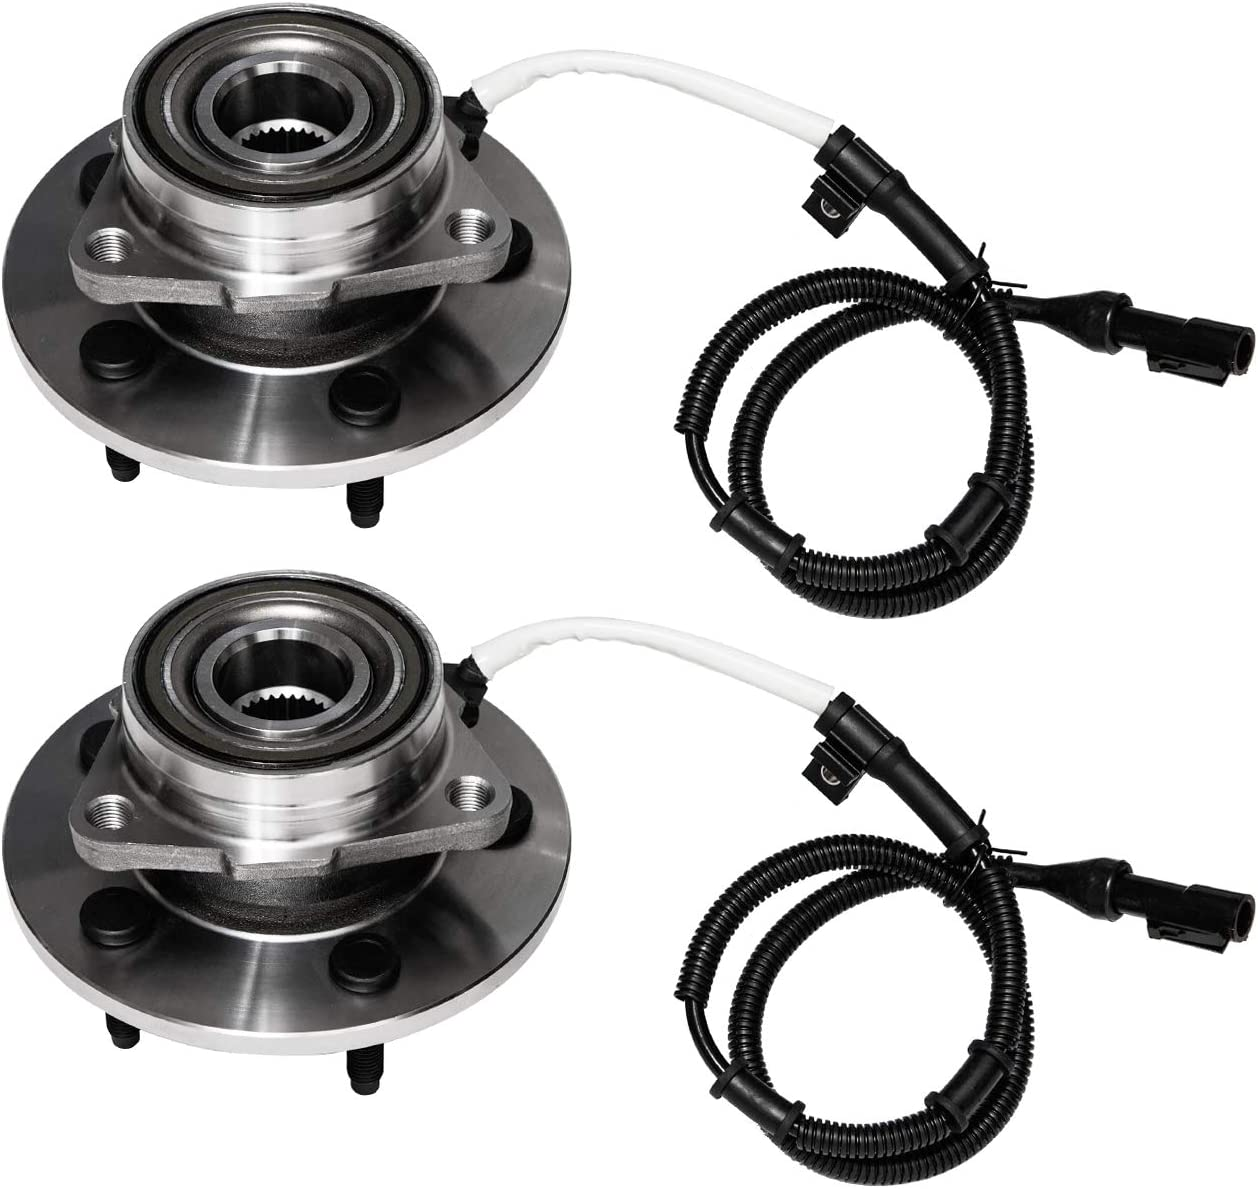 Front Wheel Bearing and Hub Assembly Compatible With 1997-2000 Ford Expedition 1998-2000 Lincoln Navigator 4WD Models Only;M12 Wheel Bolts TUCAREST 515004 x2 Pair 5-Stud Hub W//ABS